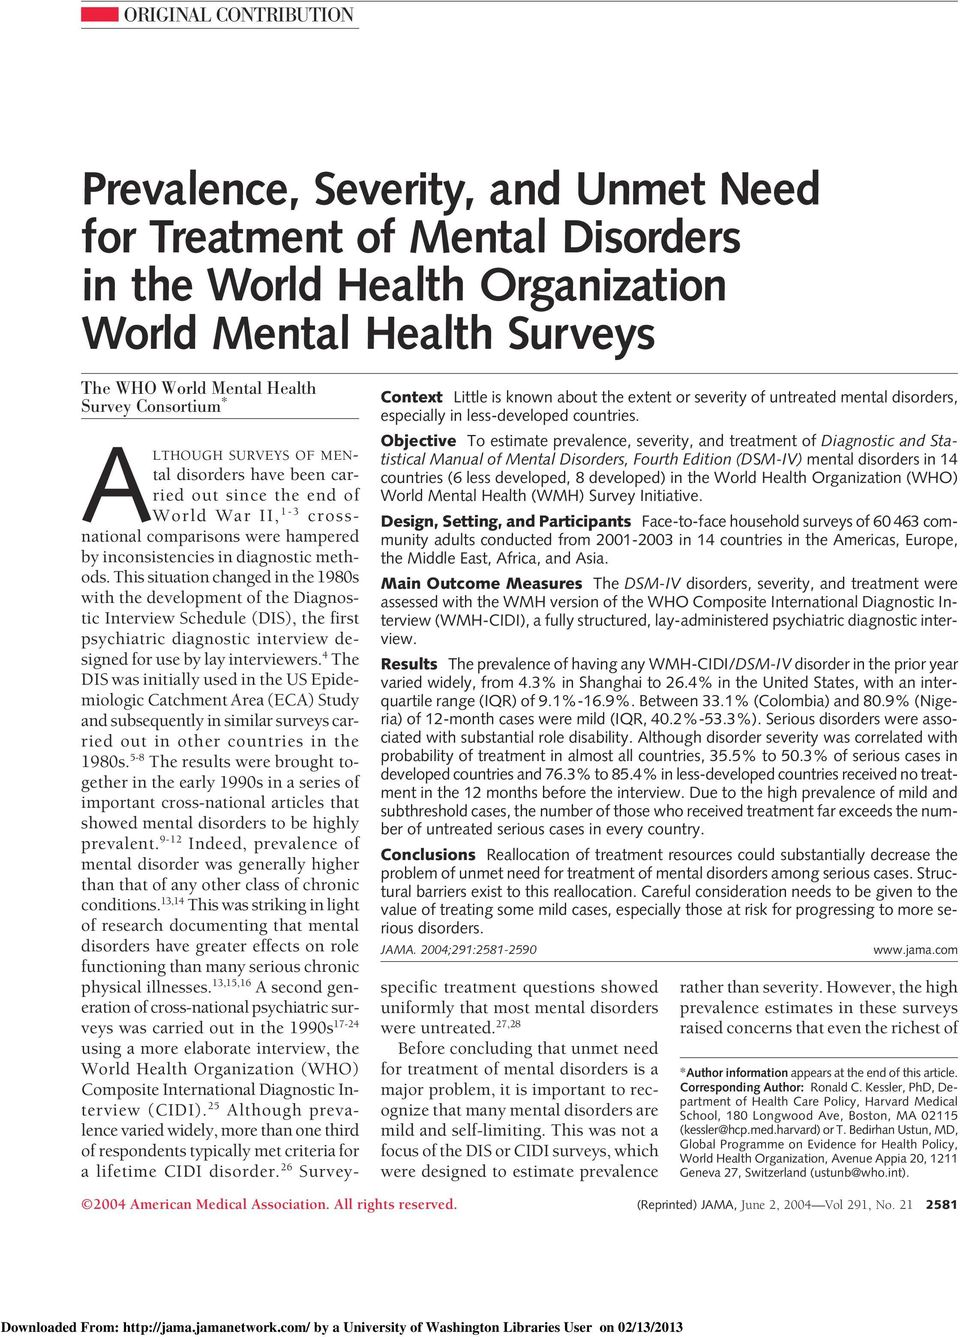 Objective To estimate prevalence, severity, and treatment of Diagnostic and Statistical Manual of Mental Disorders, Fourth Edition (DSM-IV) mental disorders in 14 countries (6 less developed, 8